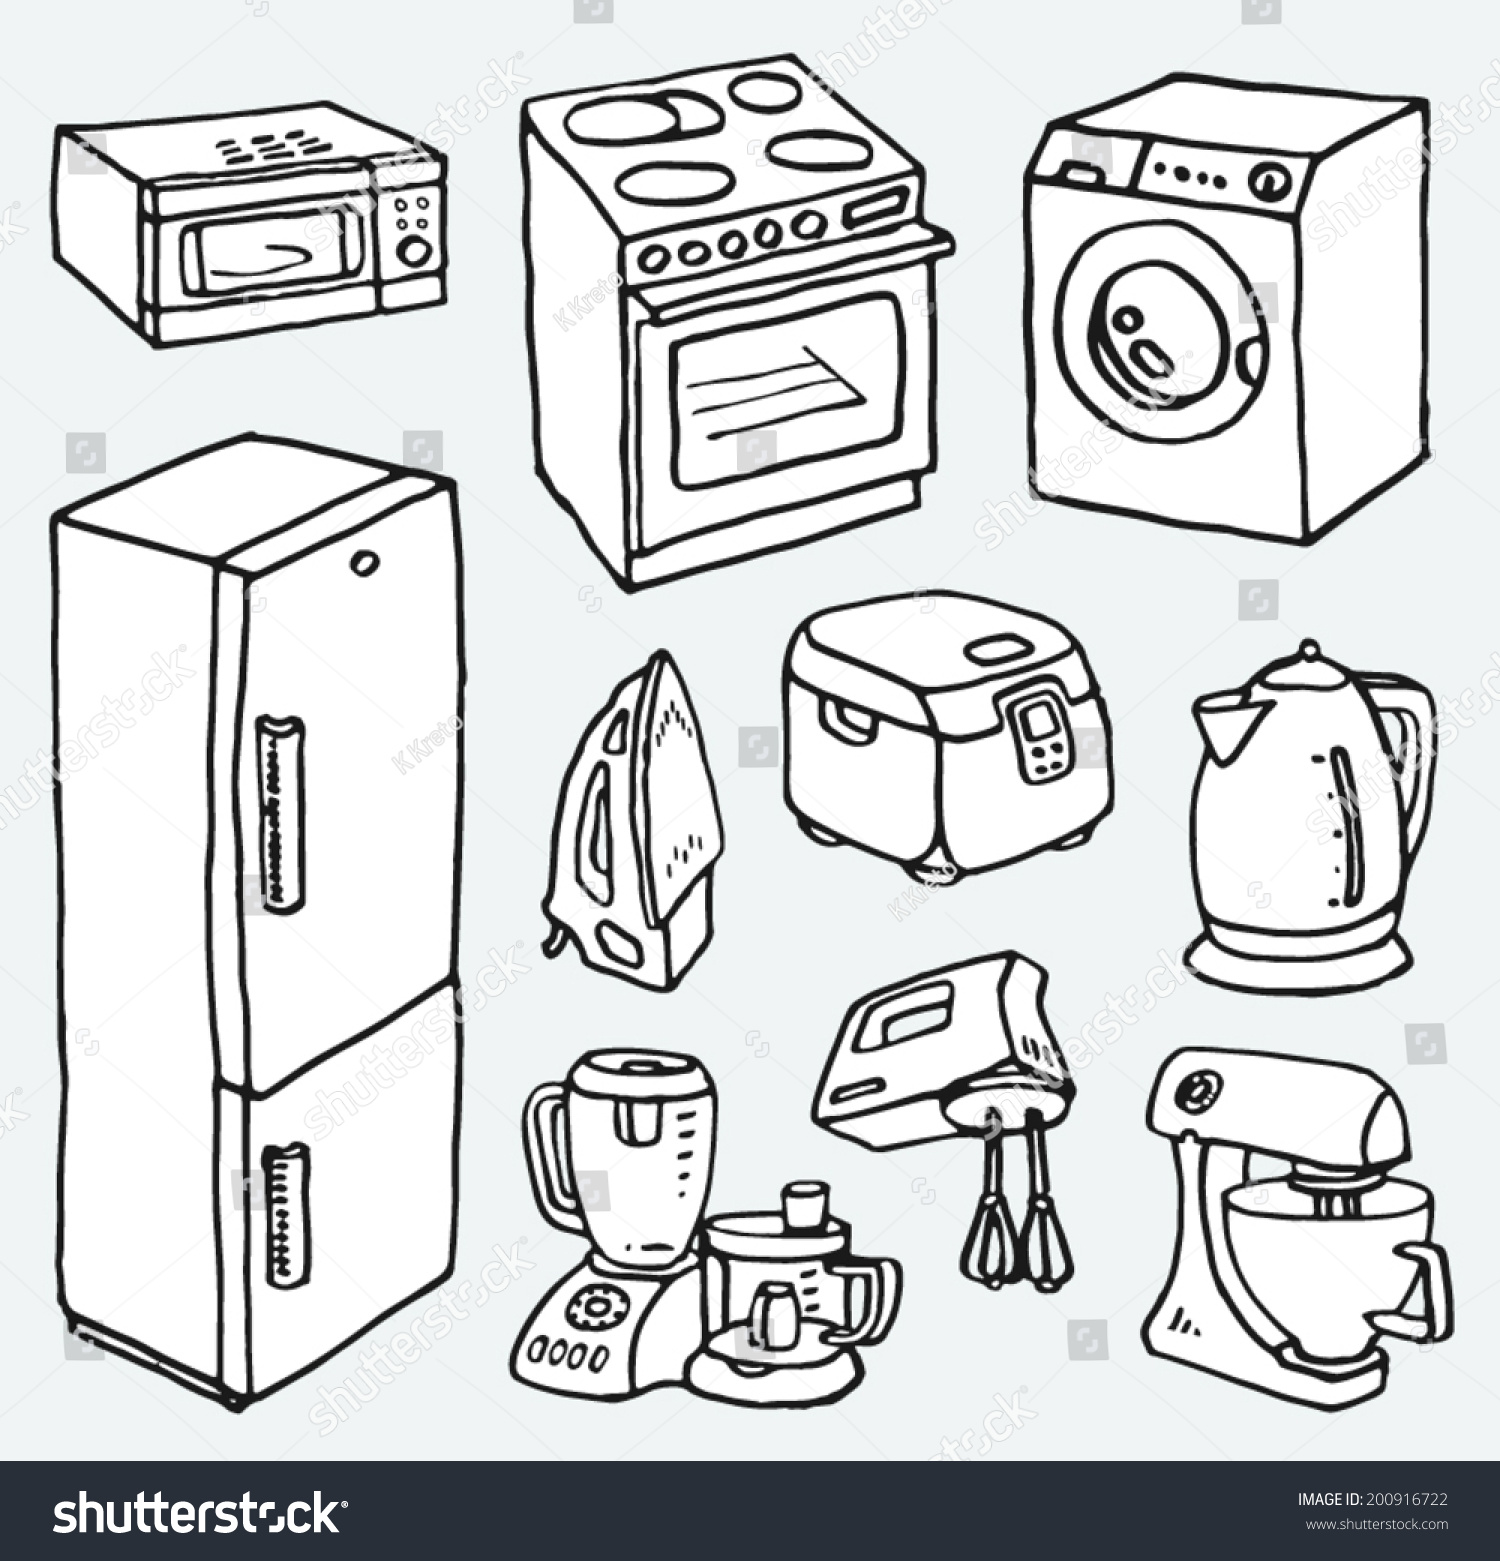 Cartoon Electric Cooker ~ Royalty free cartoon hand drawn household appliances